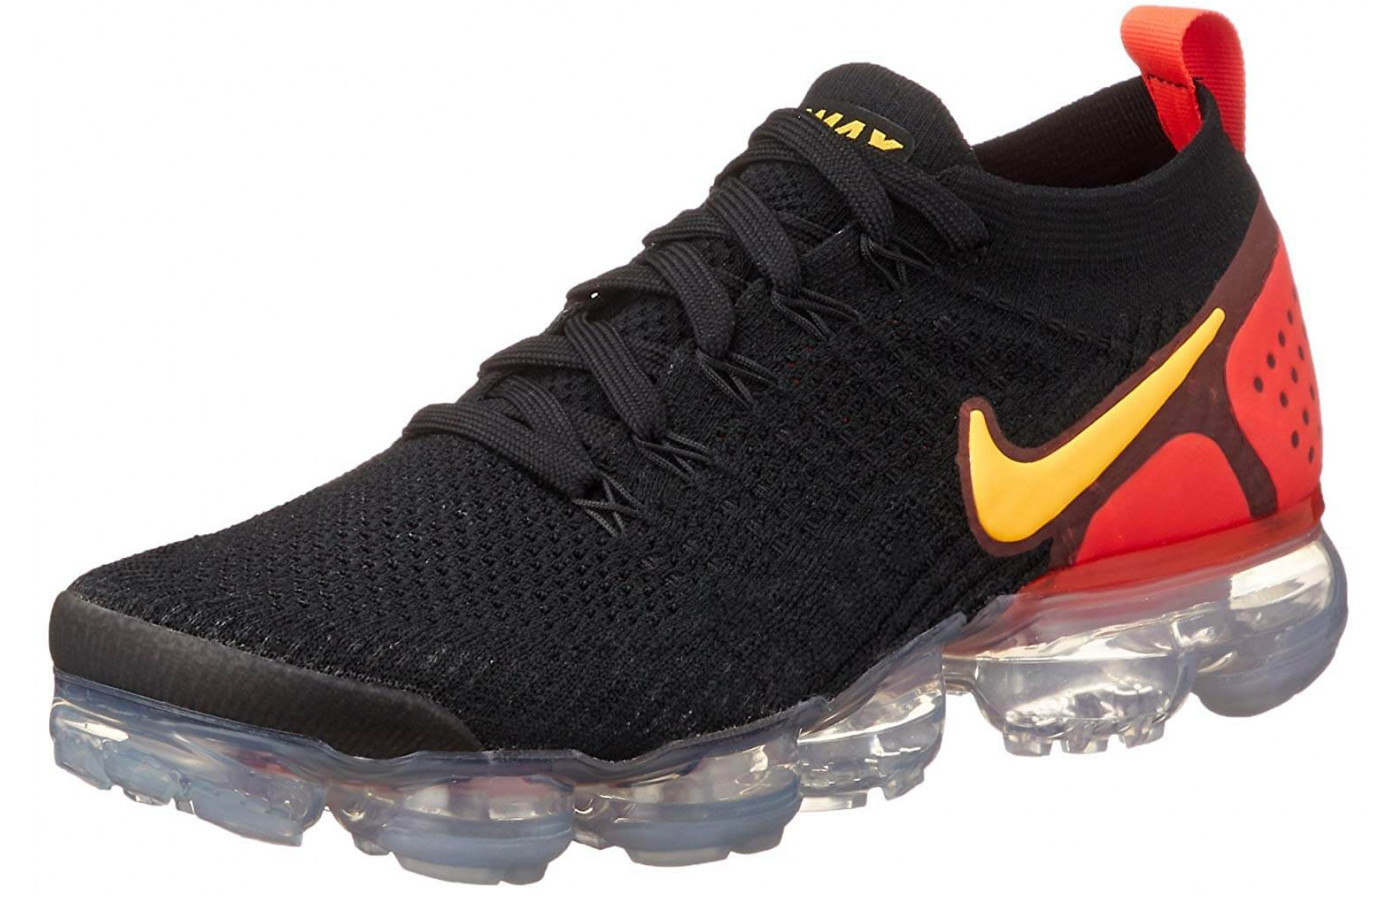 the best attitude 37206 d3155 Nike Air VaporMax Flyknit 2 - To Buy or Not in May 2019